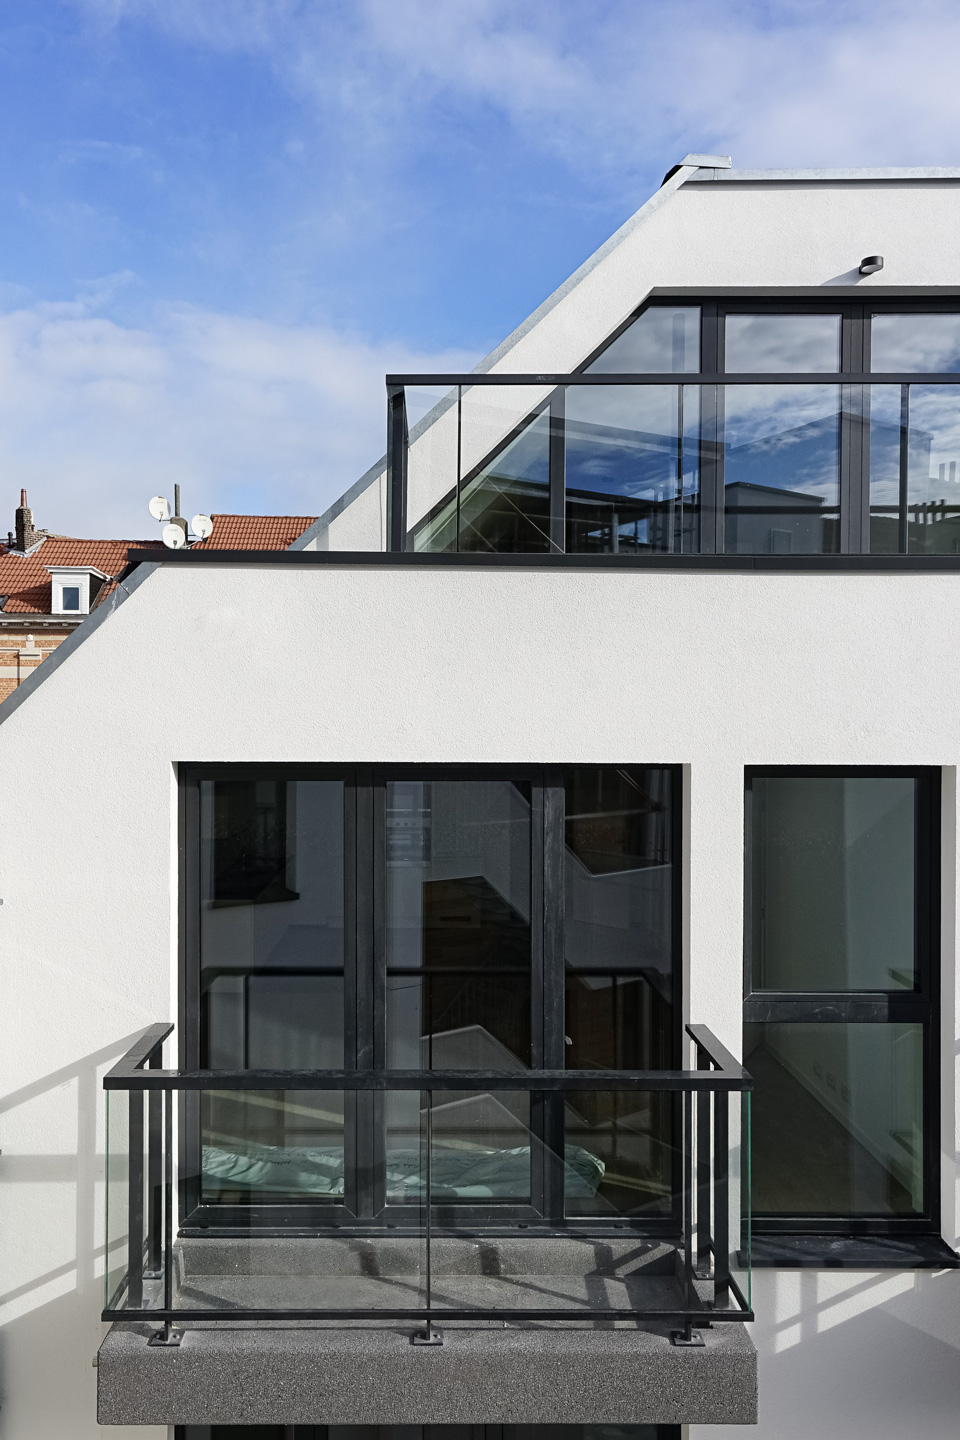 An atypical roof shape for the penhouse apartment